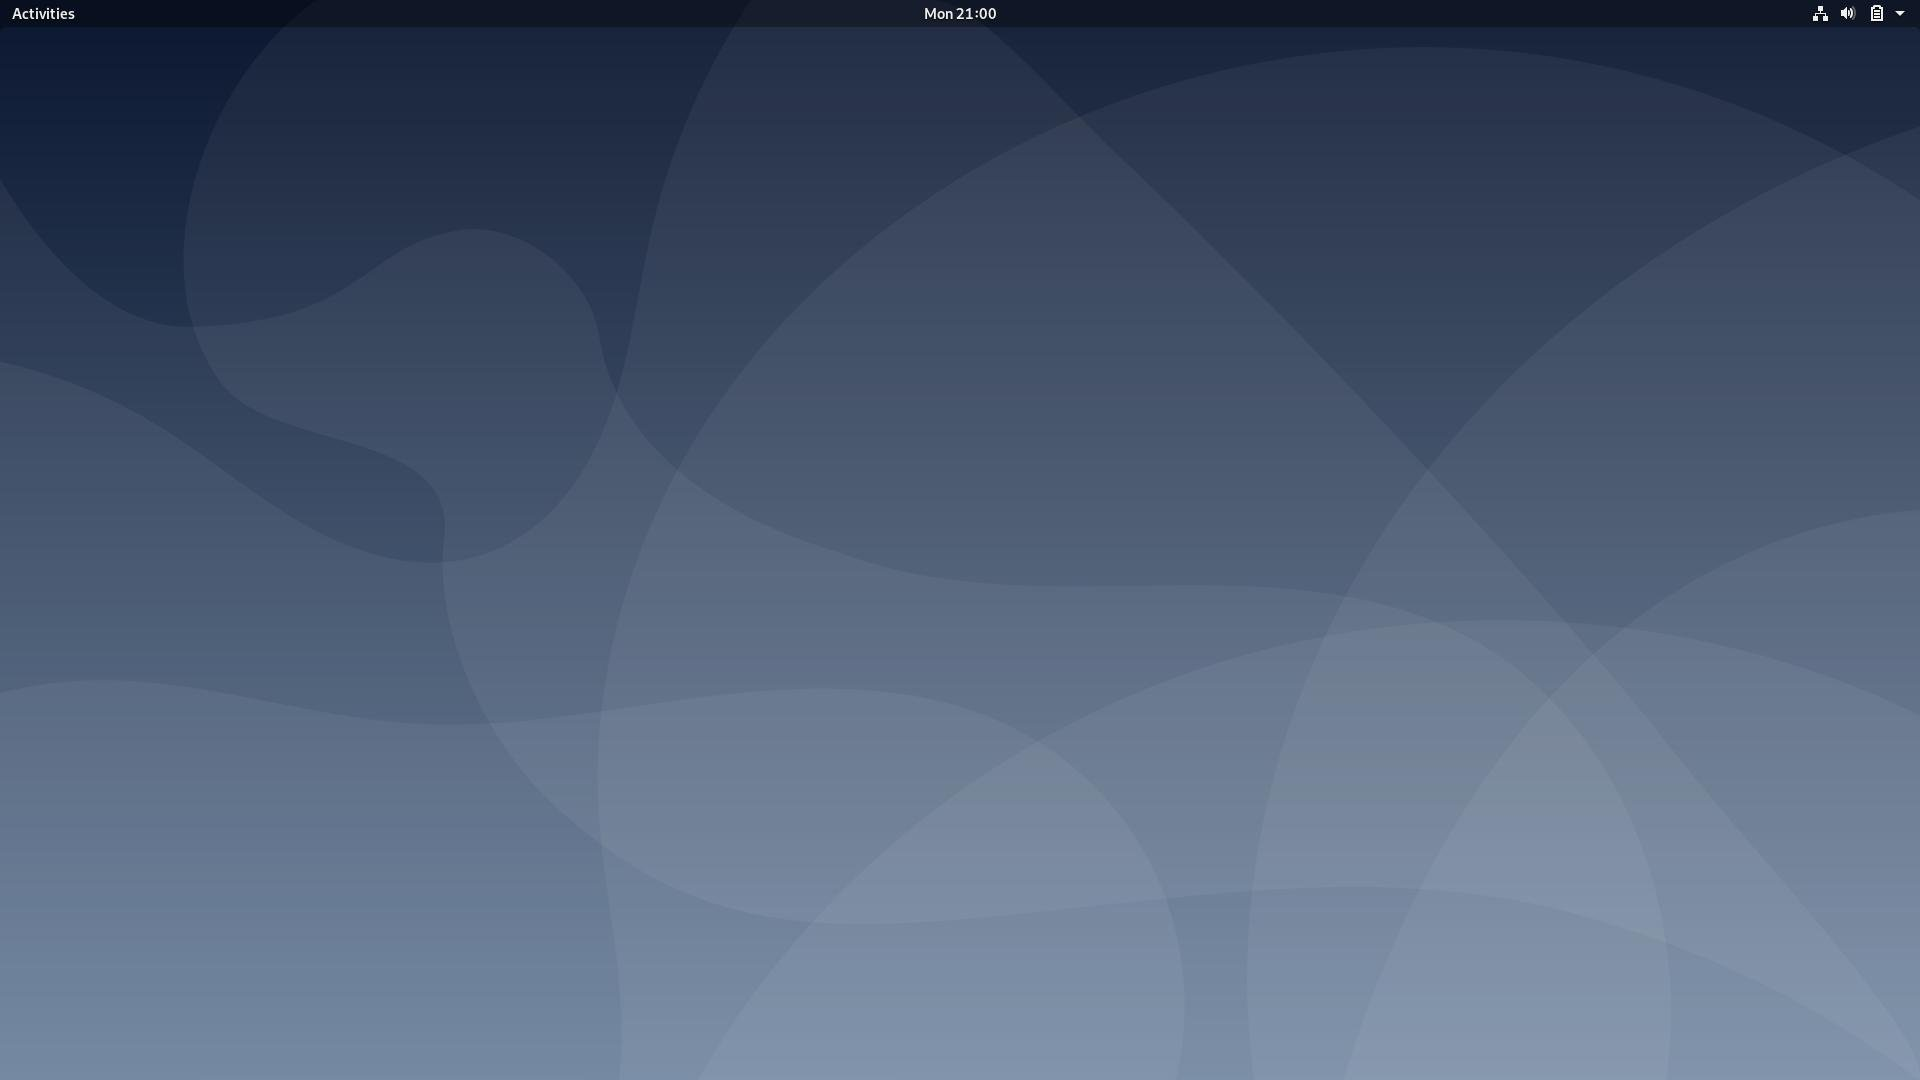 The default GNOME desktop on Debian 10.